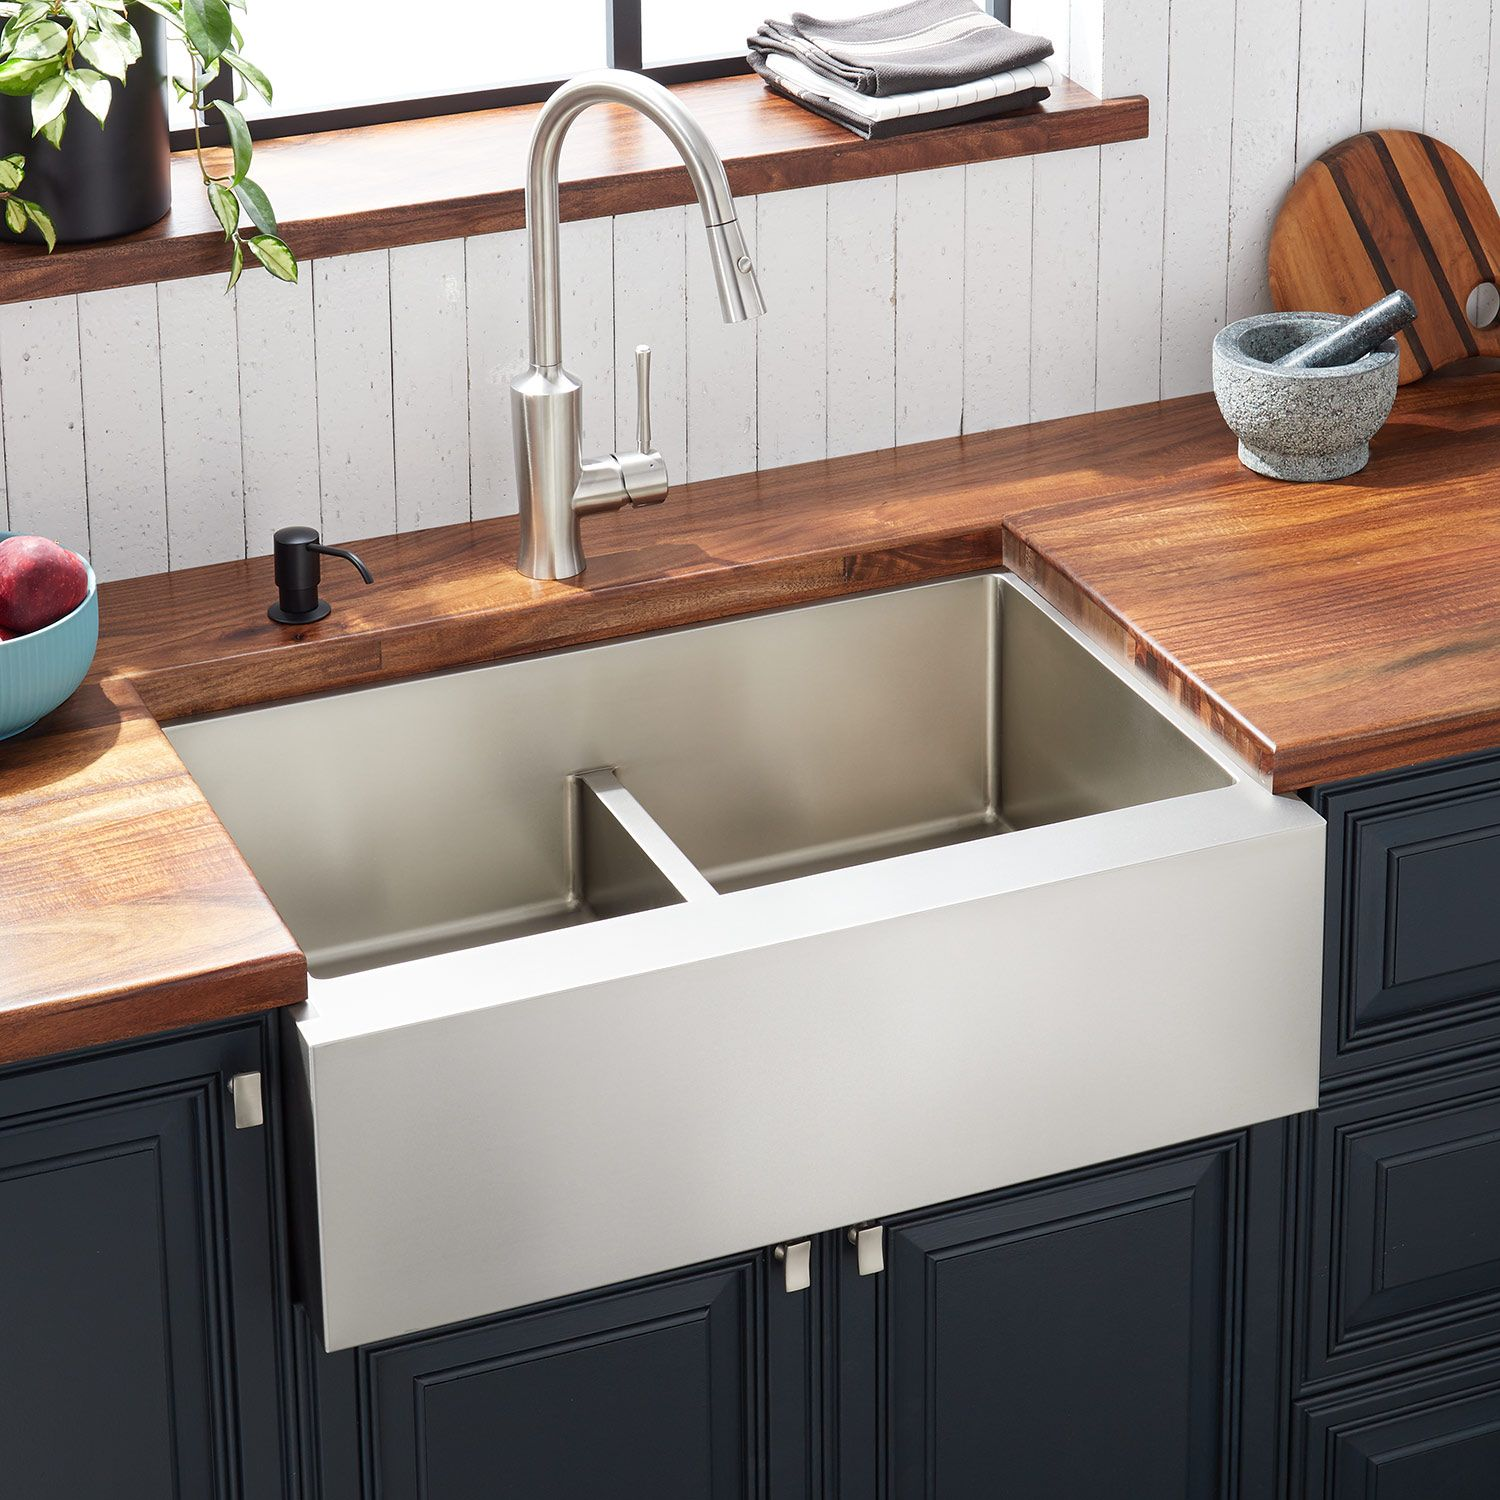 29 Atlas Double Bowl Stainless Steel Farmhouse Sink In Pewter